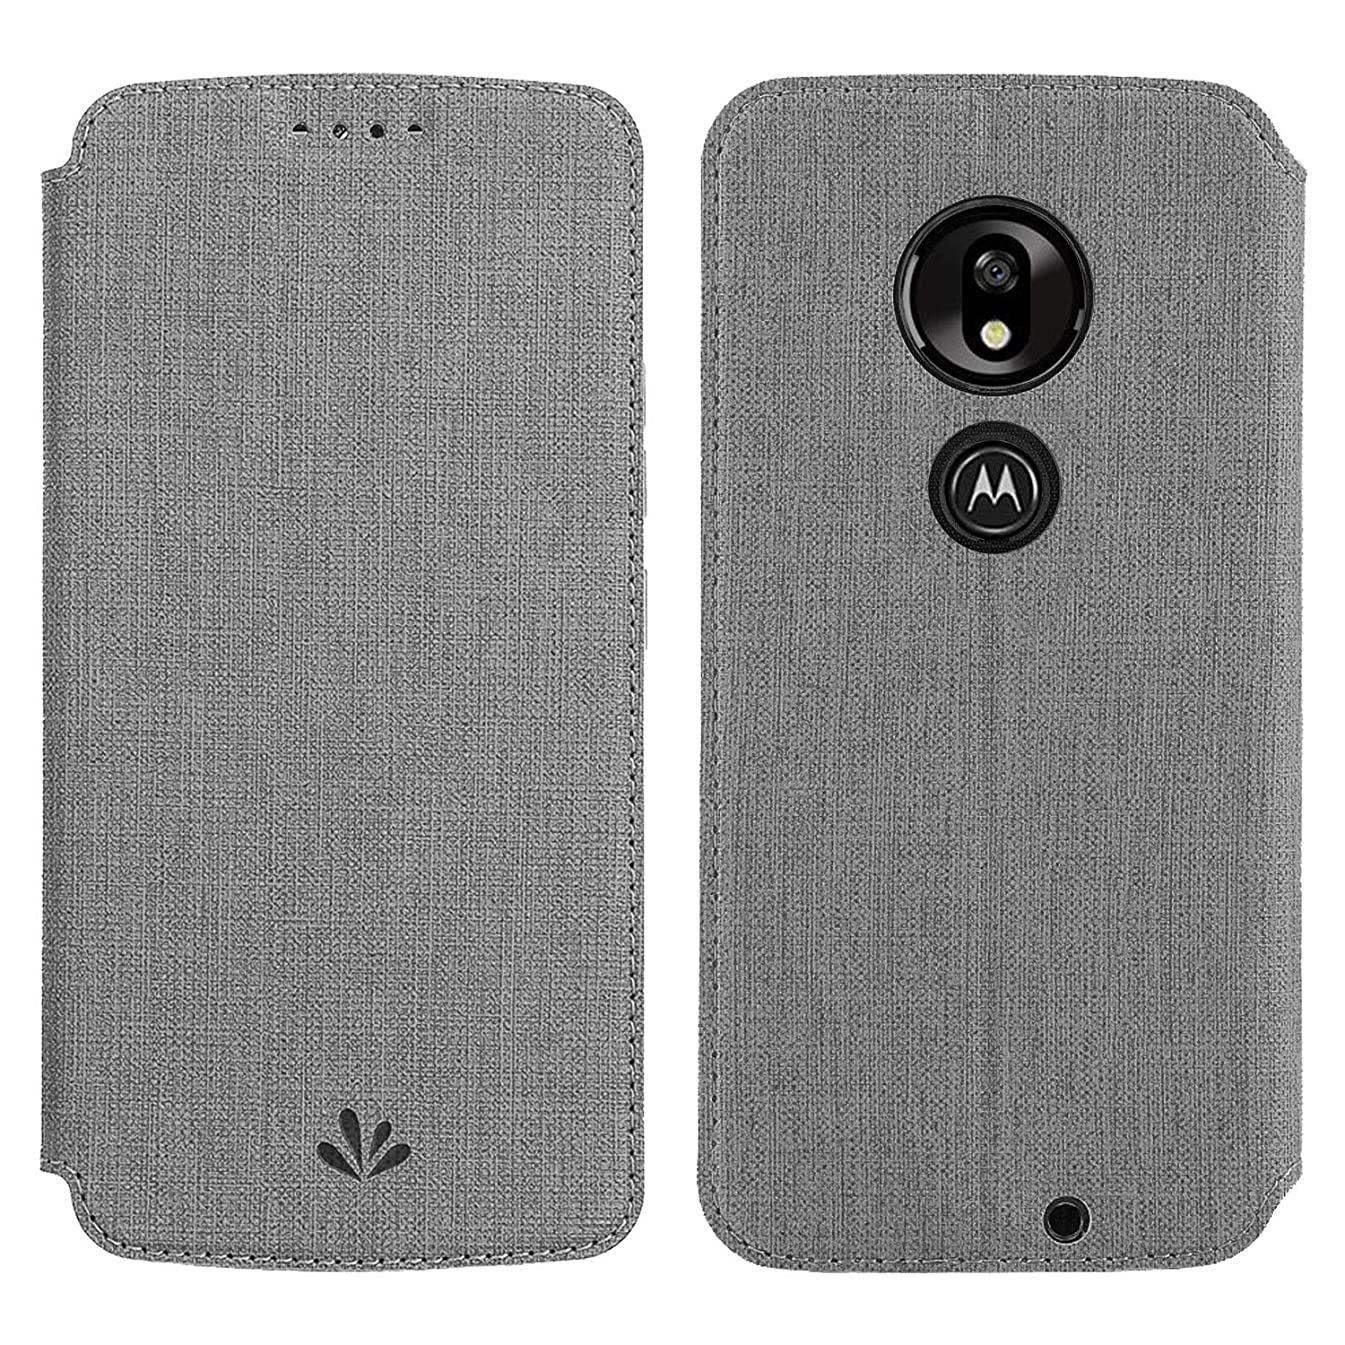 Simicoo Motorola Moto G7 Play Flip PU Leather Wallet Case Card Holster Stand Magnetic Cover Clear Silicone TPU Full Body Shockproof Pocket Thin Wallet Case for Moto G7 Play (Gray, Moto G7 Play)